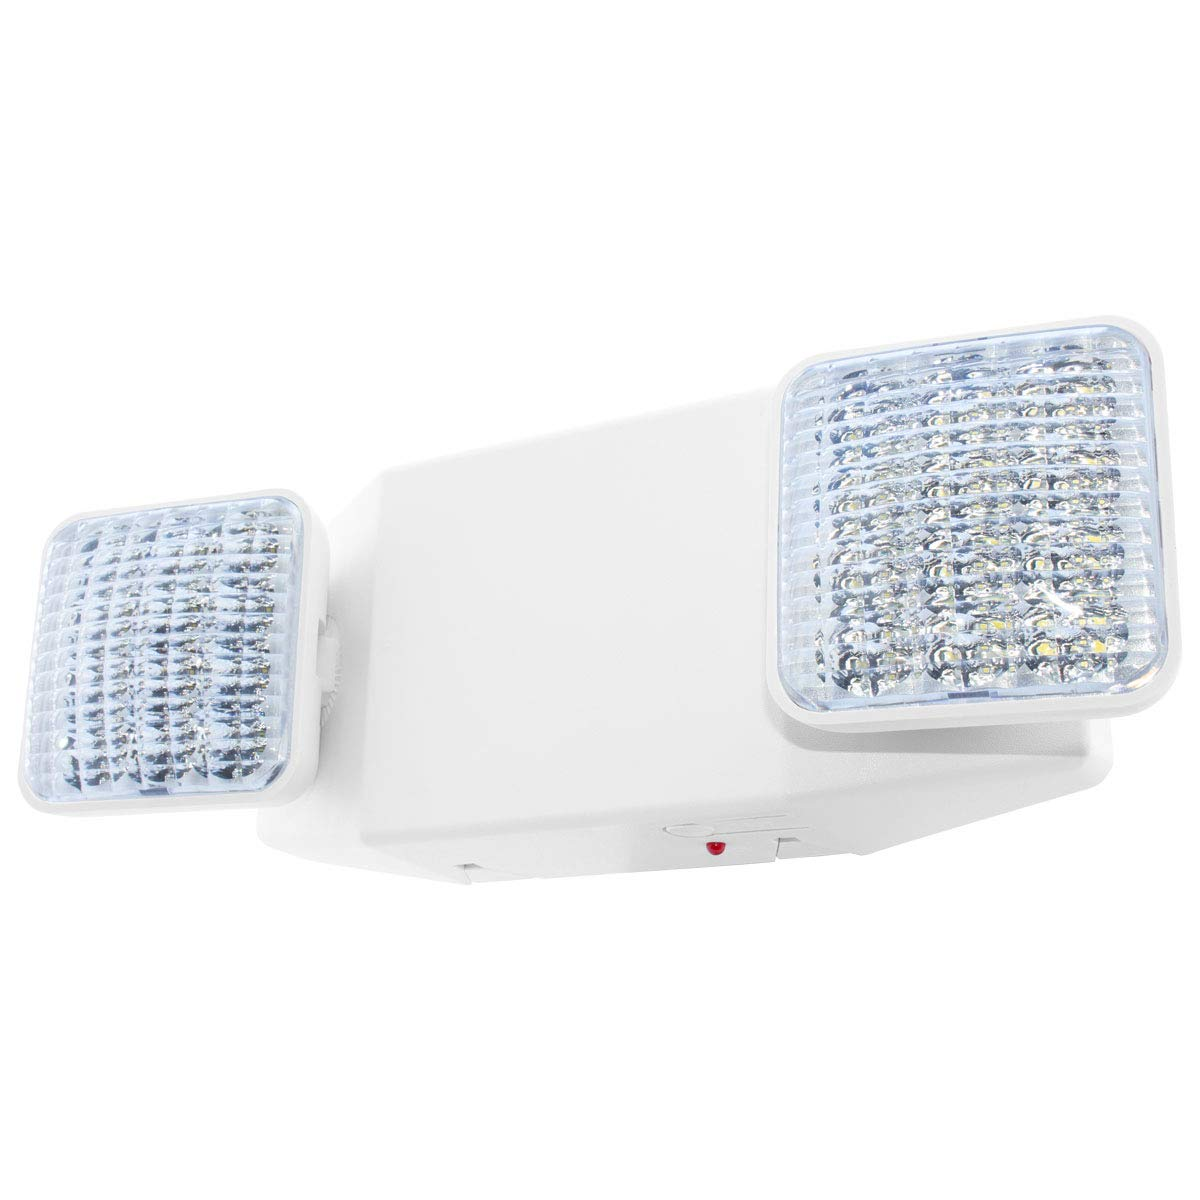 Lfi lights ul certified hardwired led standard emergency light square head elw2